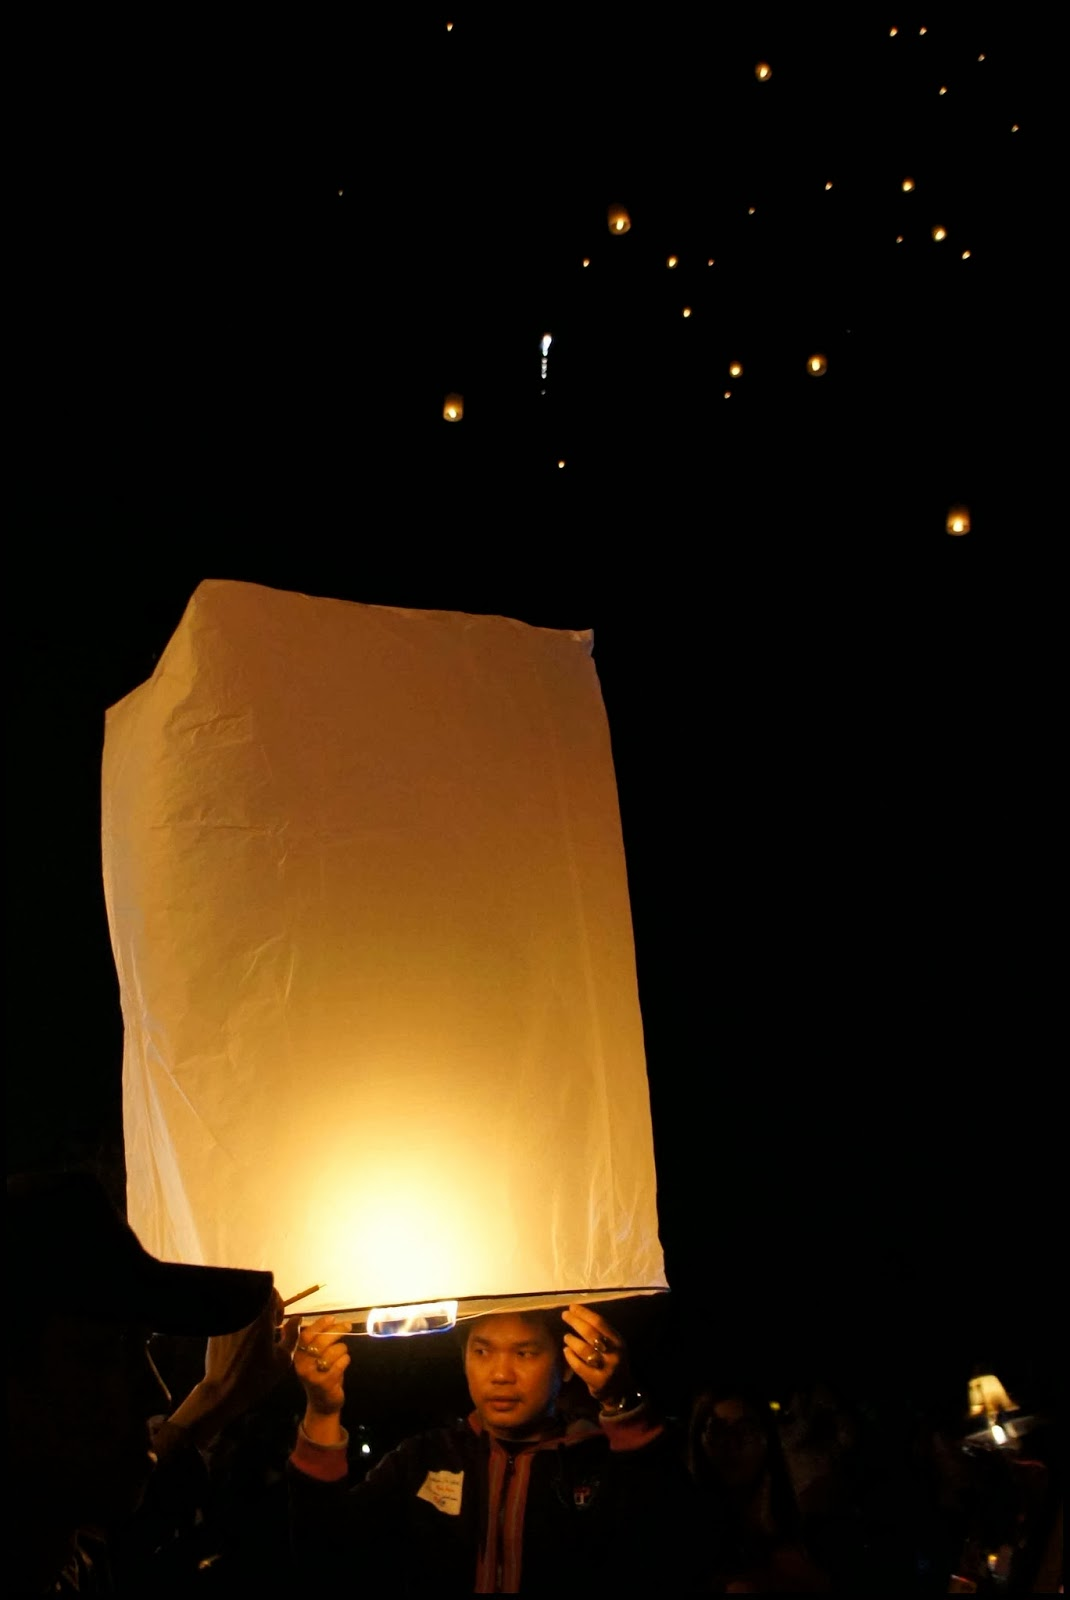 Chiang Mai Sky Lantern New Year's Eve